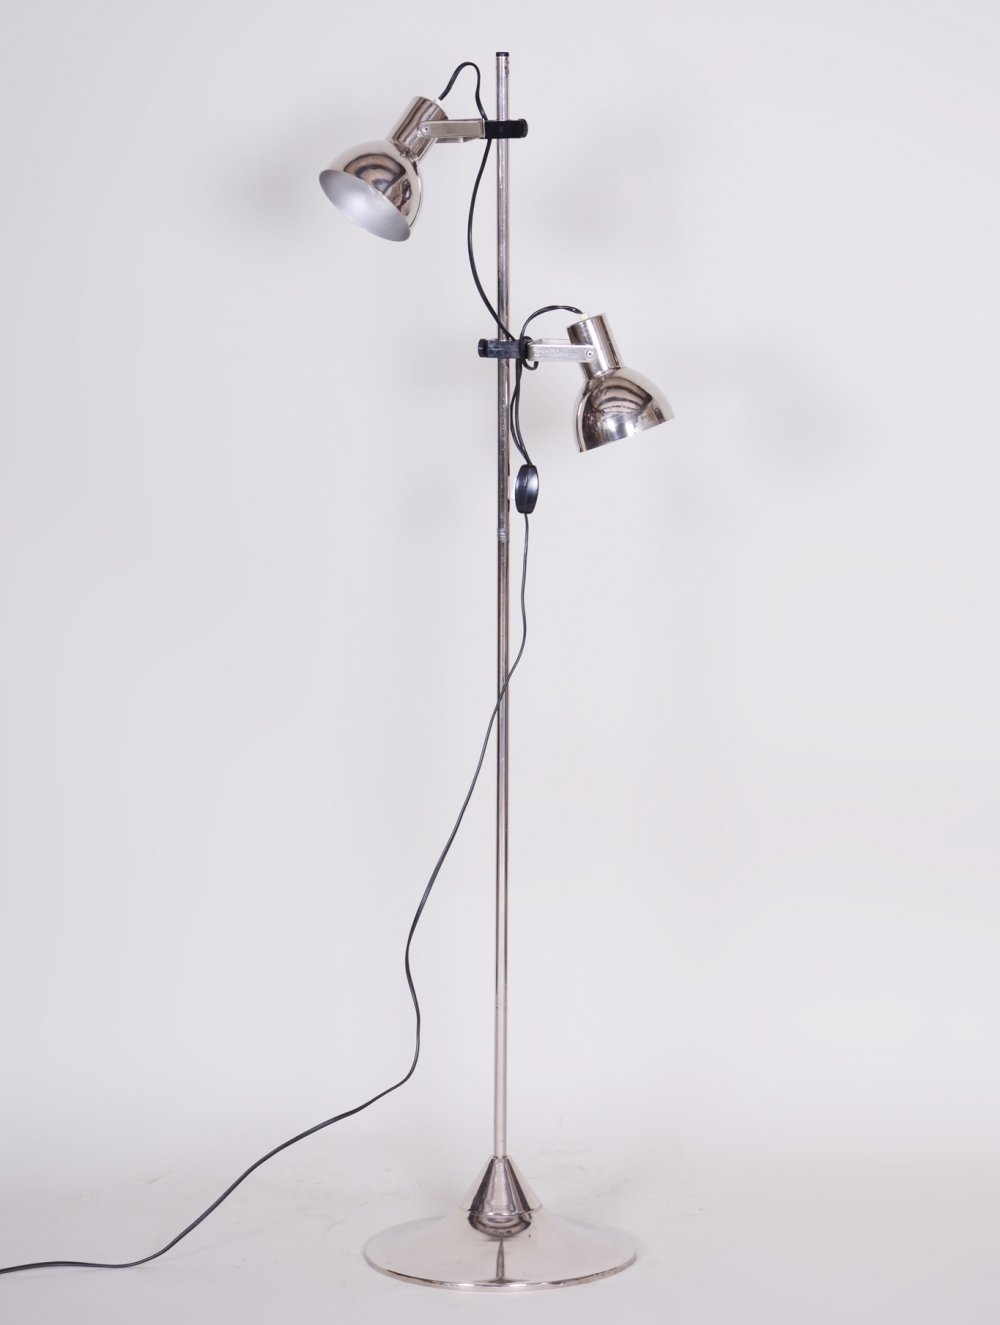 Czech Midcentury Chrome Floor Lamp, 1960s